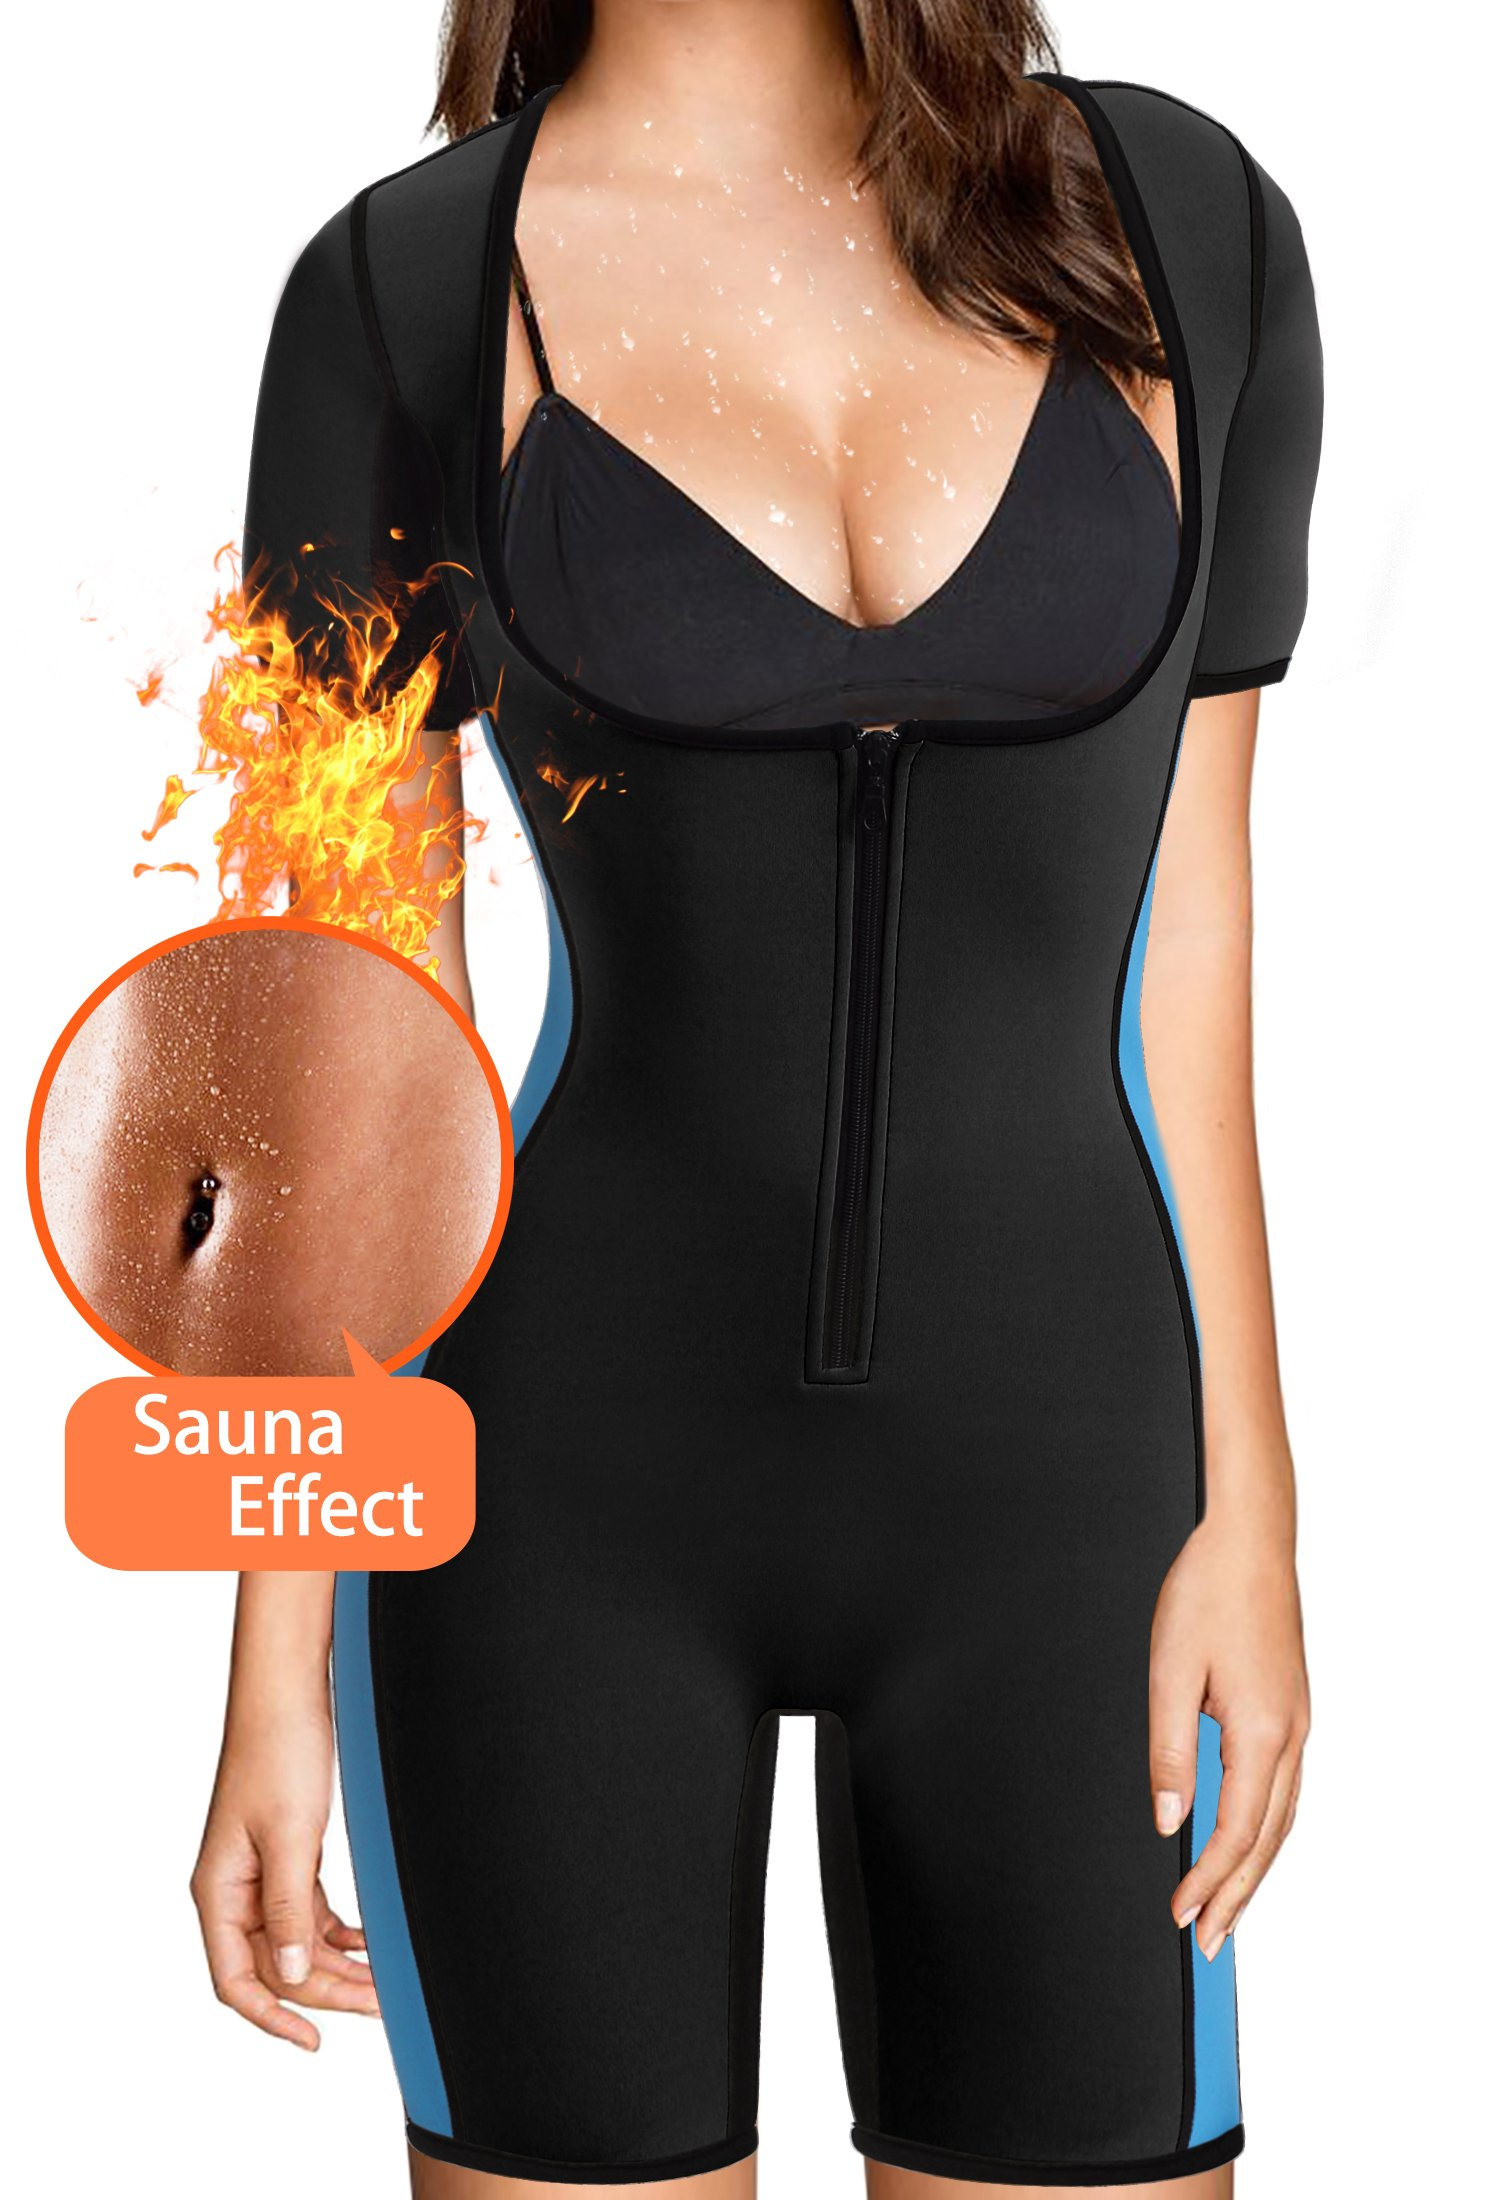 327722f186 Best Rated in Sauna Suits   Helpful Customer Reviews - Amazon.com